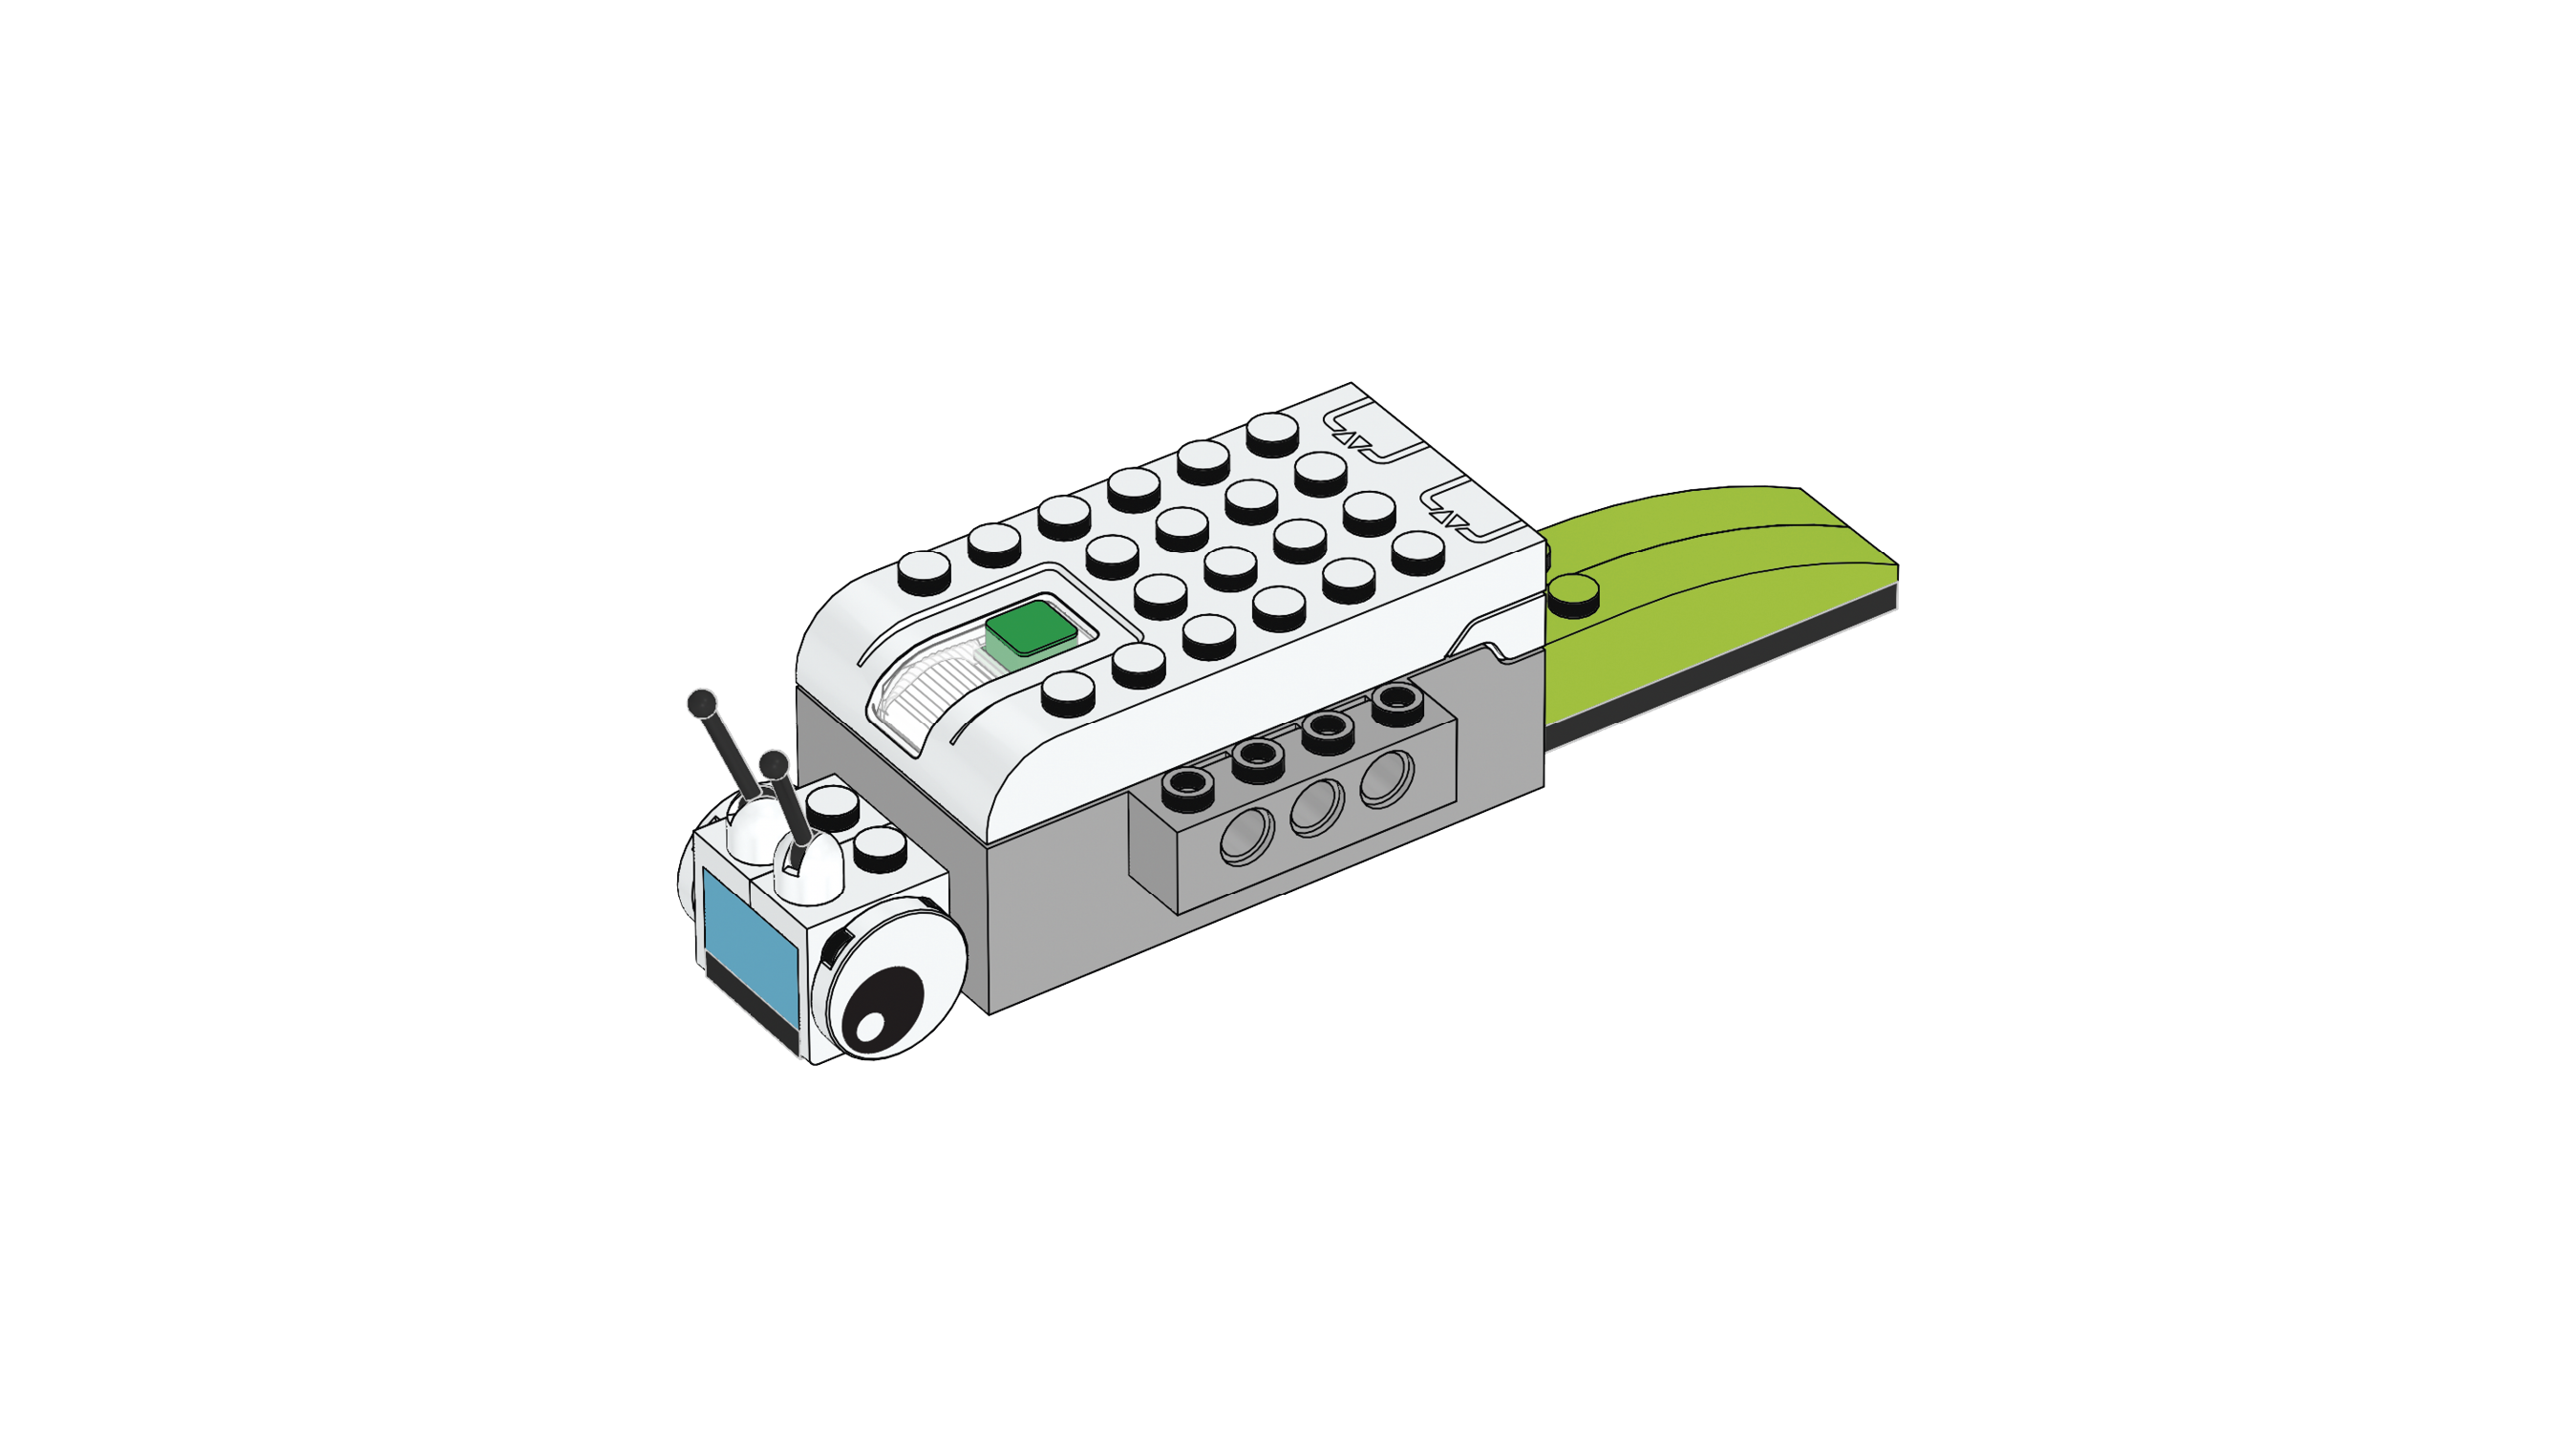 Glowing Snail Wedo 2 0 Science Lesson Plans Lego Education